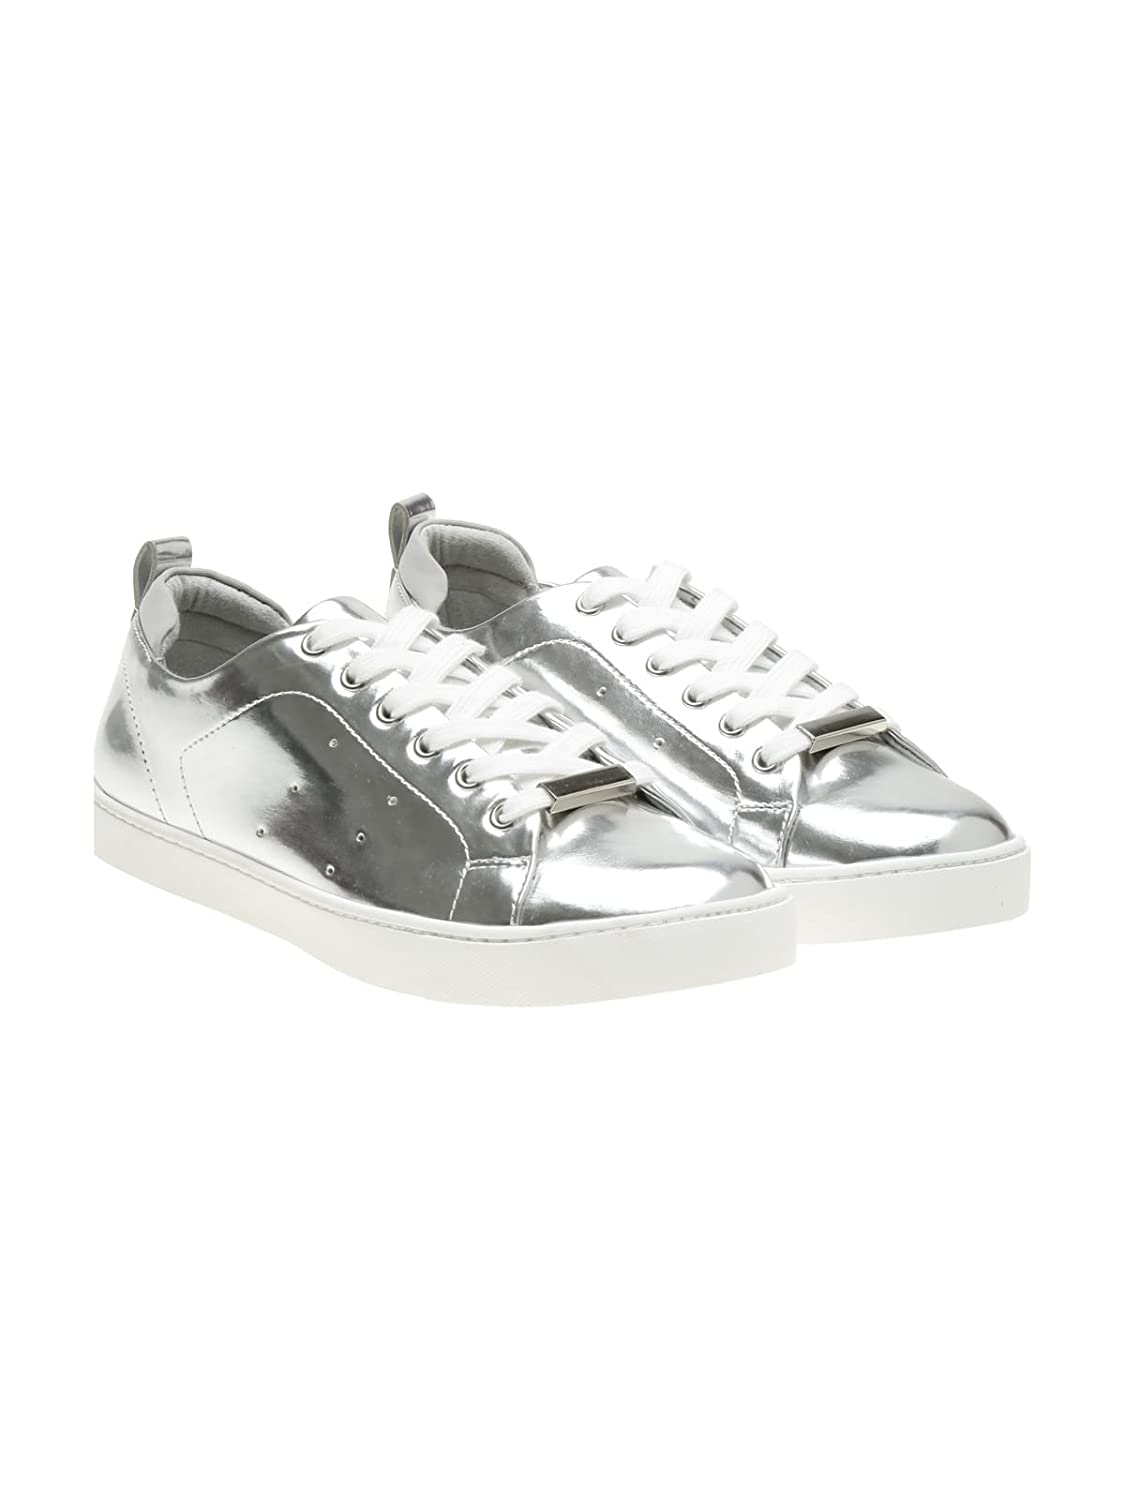 85990e149a2a8 Aldo Women's Sneakers: Buy Online at Low Prices in India - Amazon.in